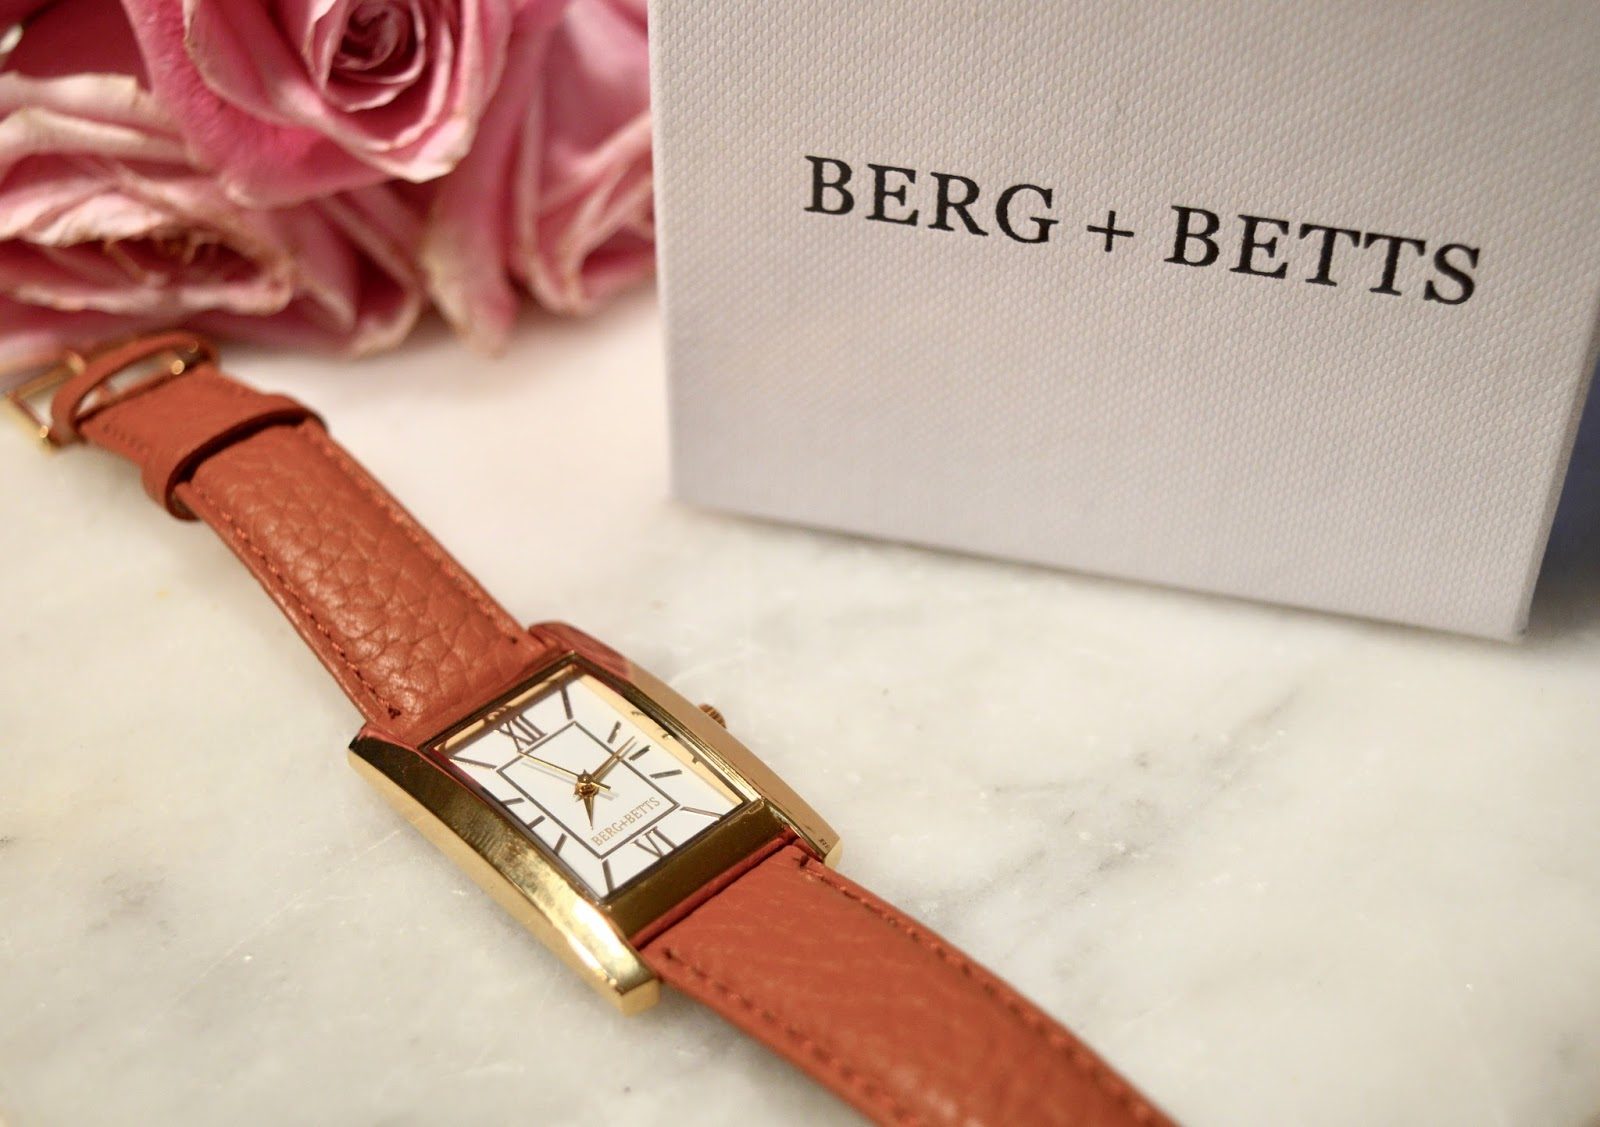 The Classic Berg and Betts watch